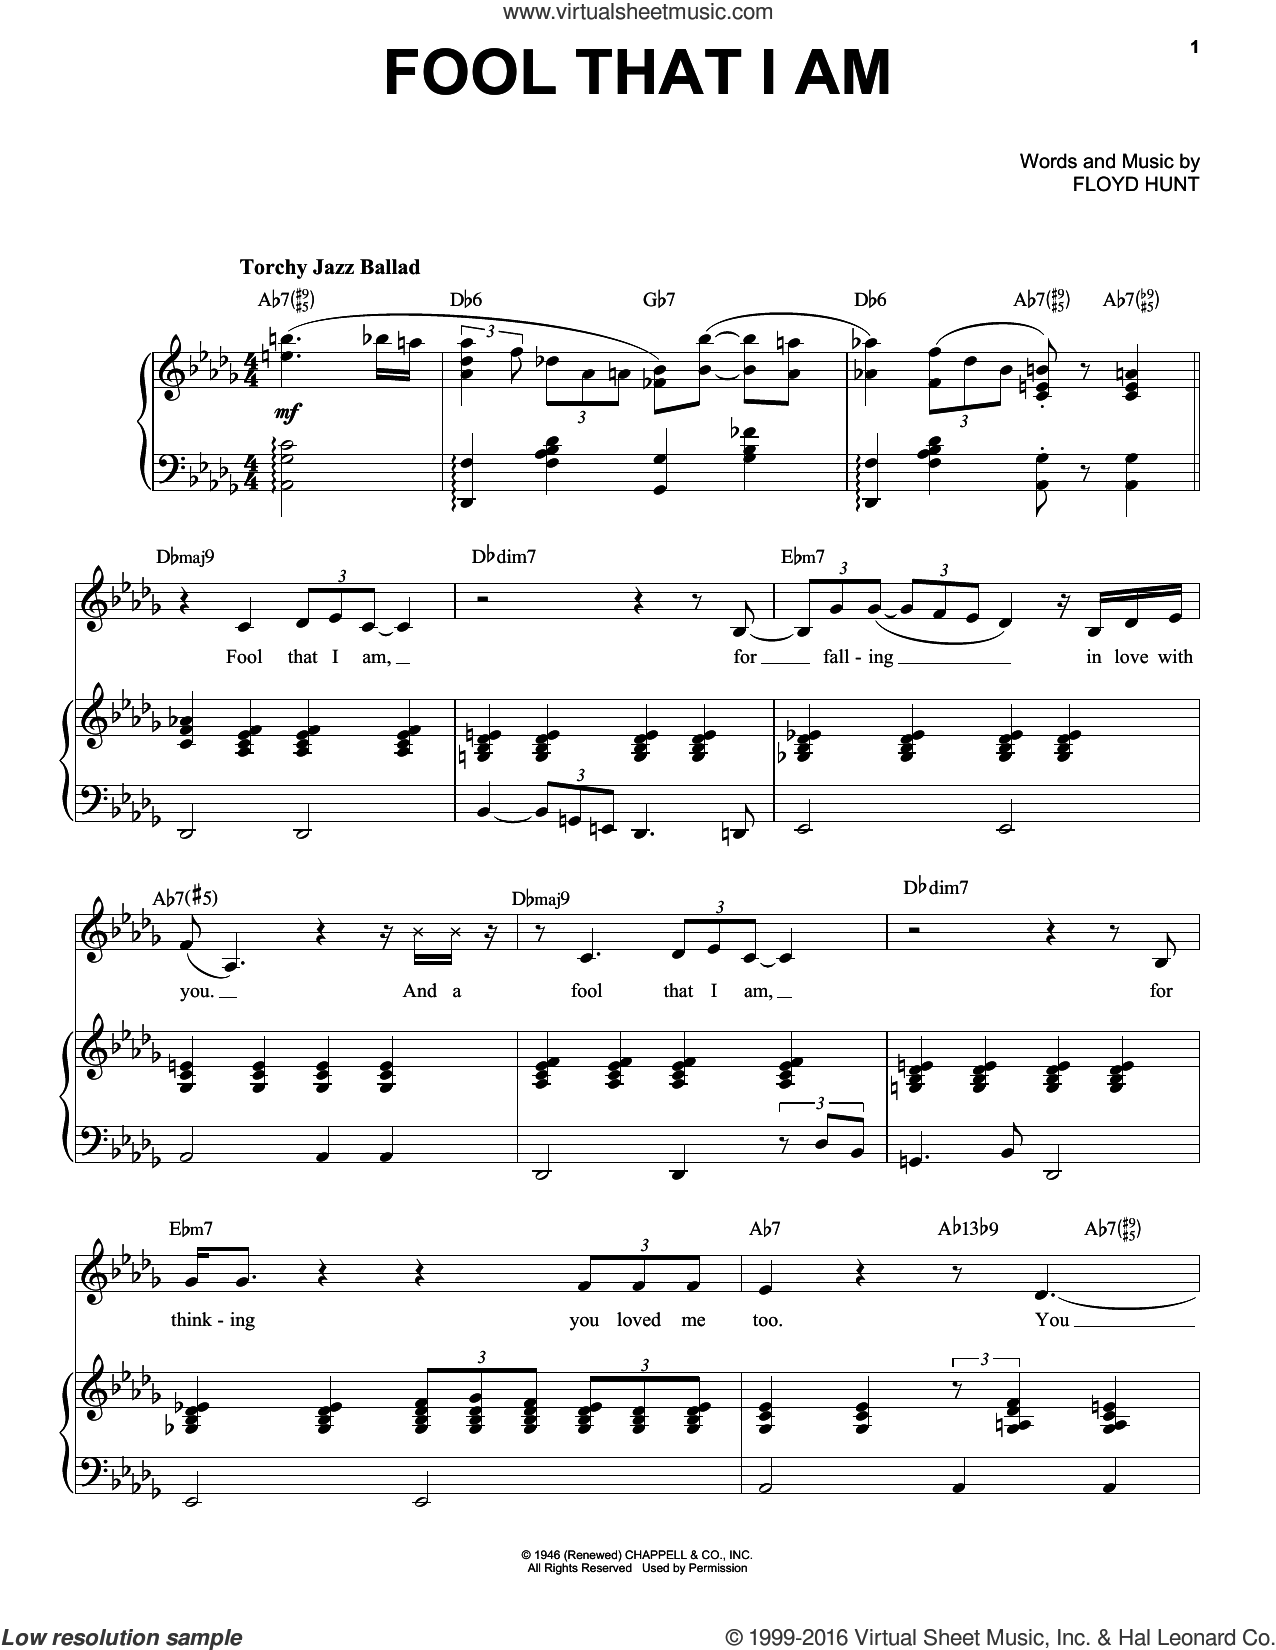 Fool That I Am sheet music for voice and piano by Etta James, Adele and Floyd Hunt, intermediate skill level